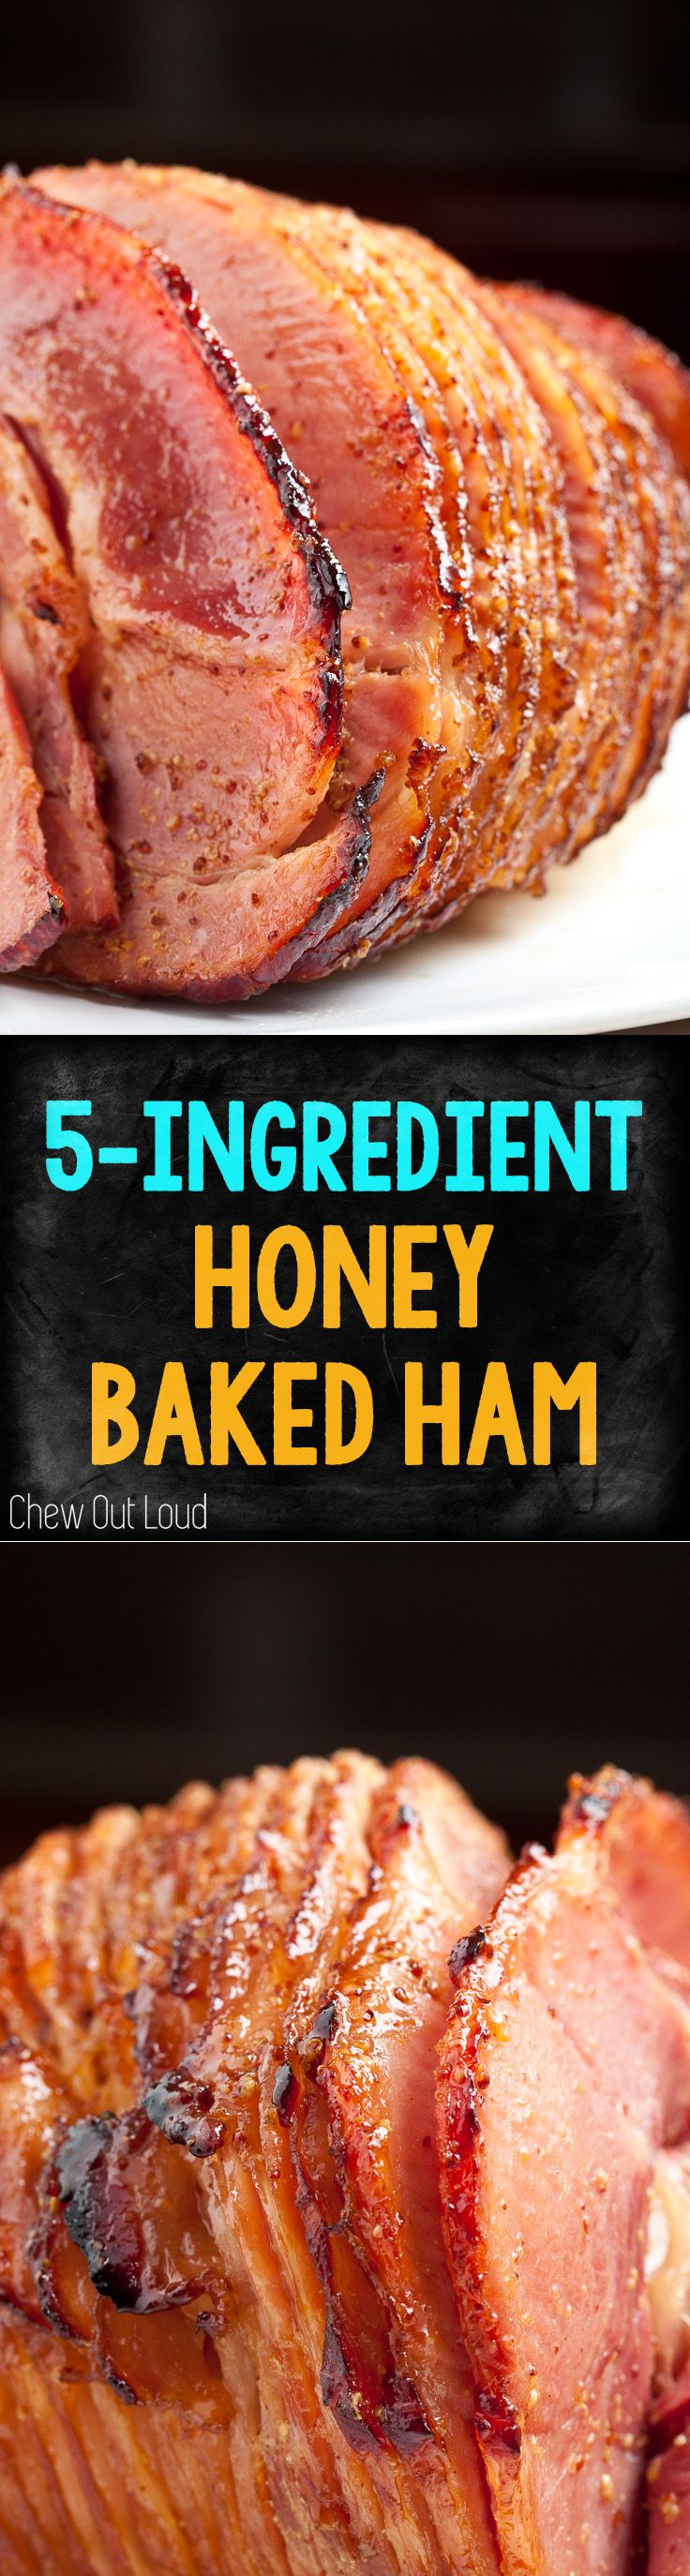 5-Ingredient Honey Baked Ham. WAY cheaper to make it yourself; SO delish! You won't believe how easy it is.  #ham #easter #holidays #christmas #honeybakedham www.chewoutloud.com